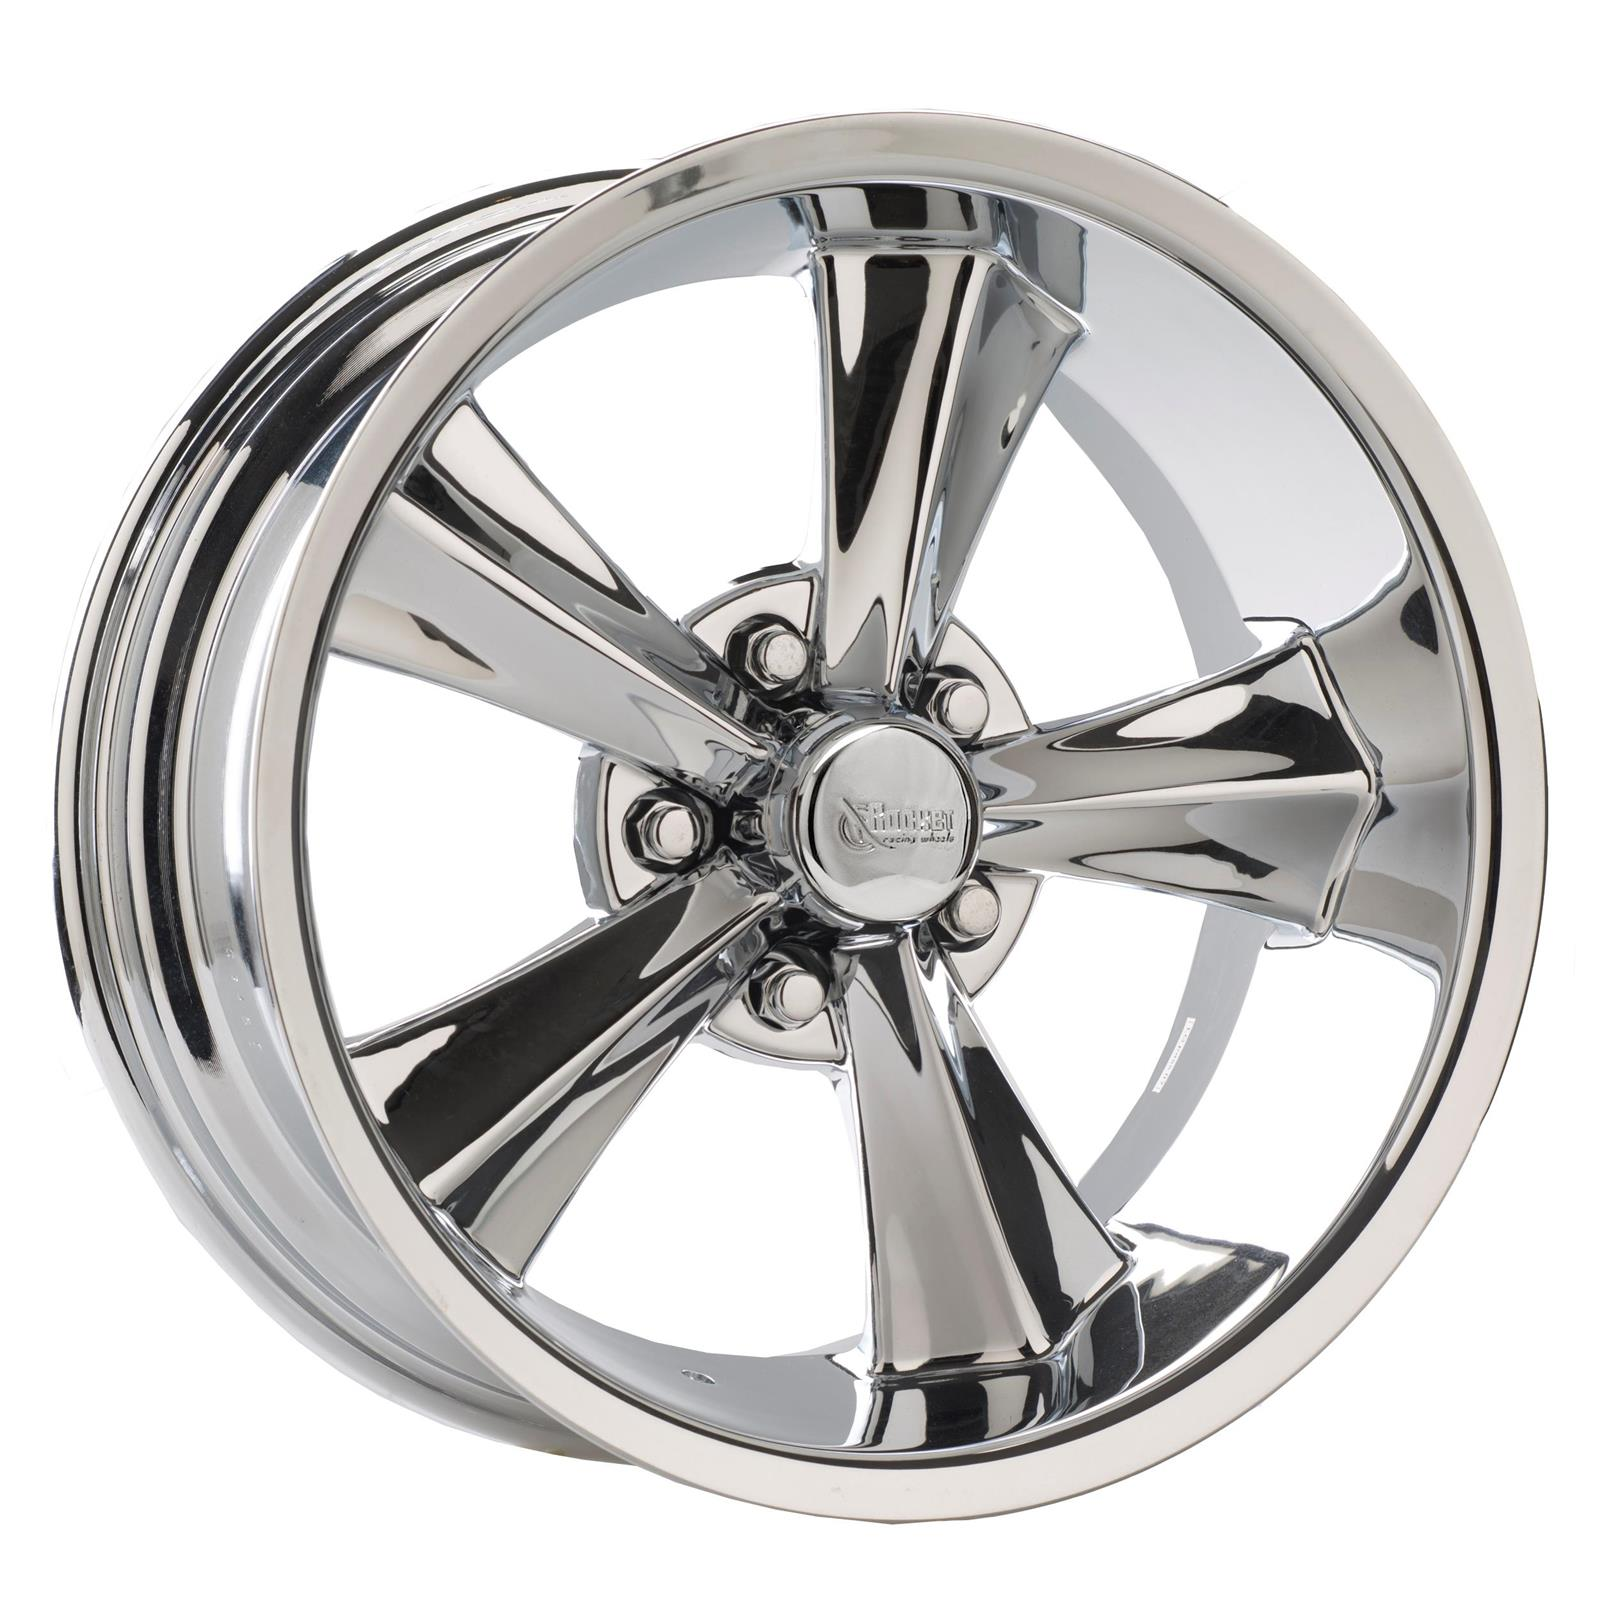 Rocket Racing R14-786545 Booster  17x8 Wheel, 5x4-1/2, 4-1/2 BS